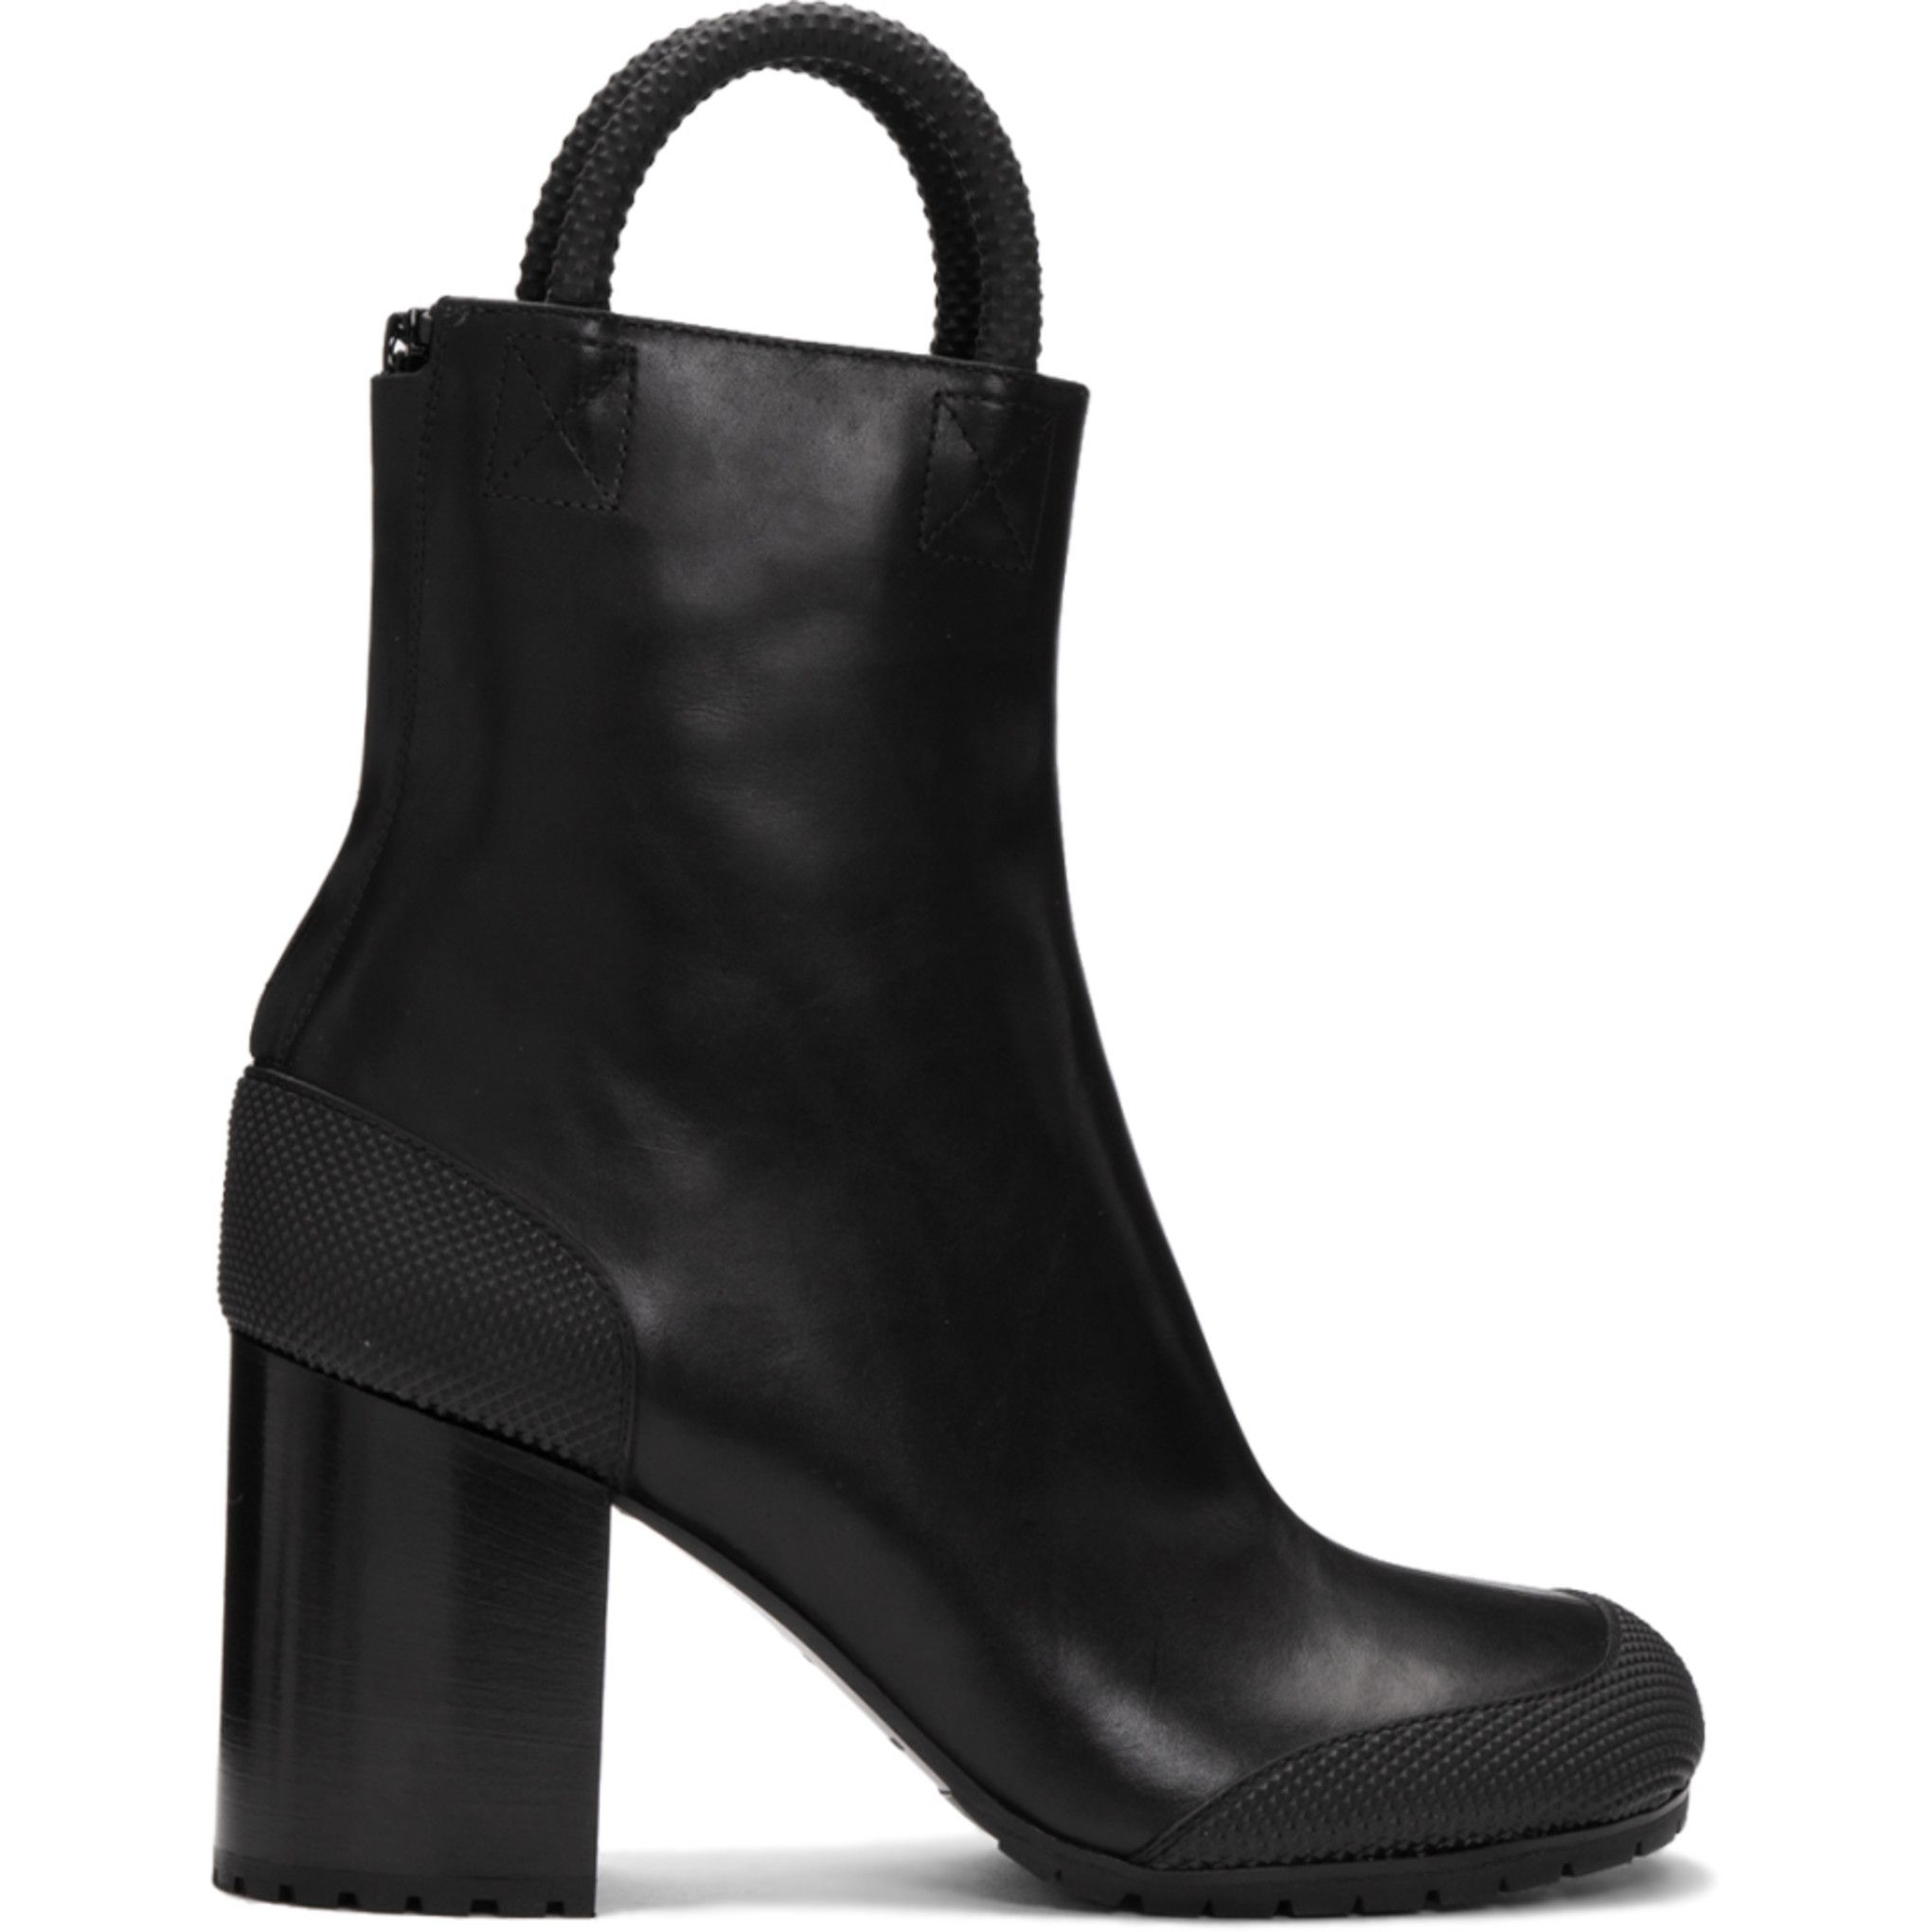 6c0a42f70c9 Random Identities - Black Leather Boots | 秋冬版面结构 | Black ...